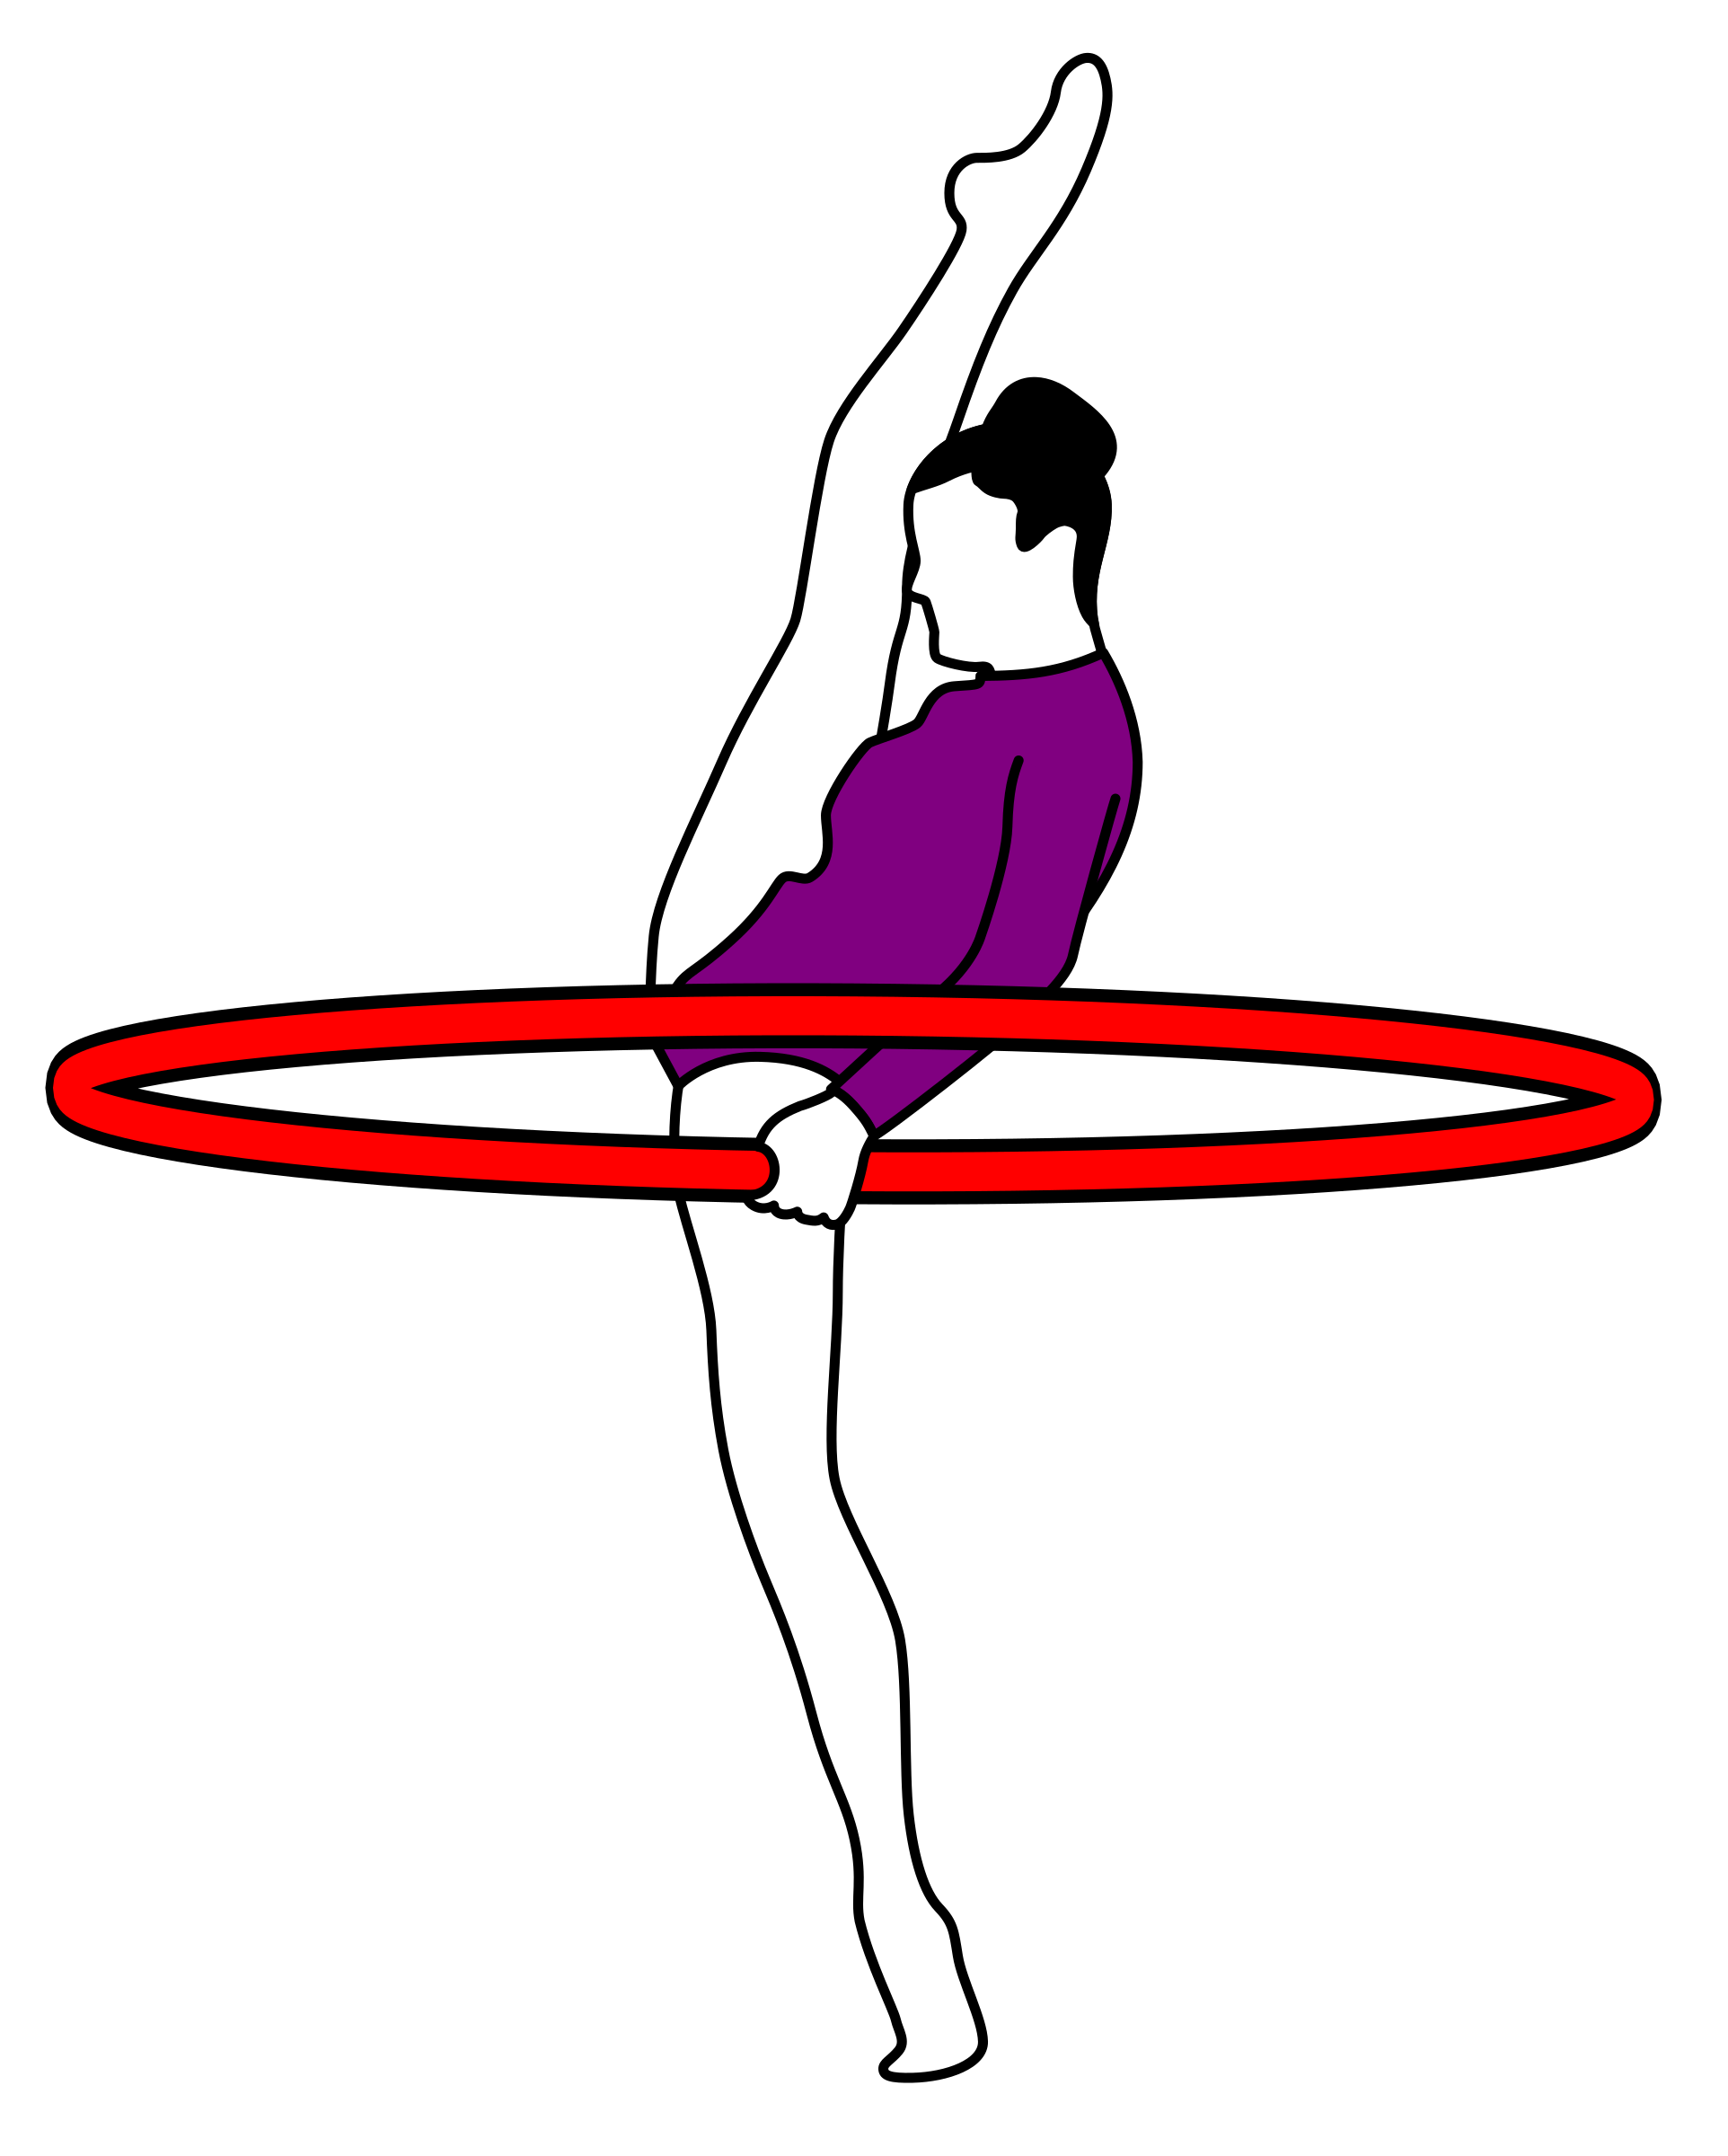 Moving clipart gymnast. Gymnastics archery icons png